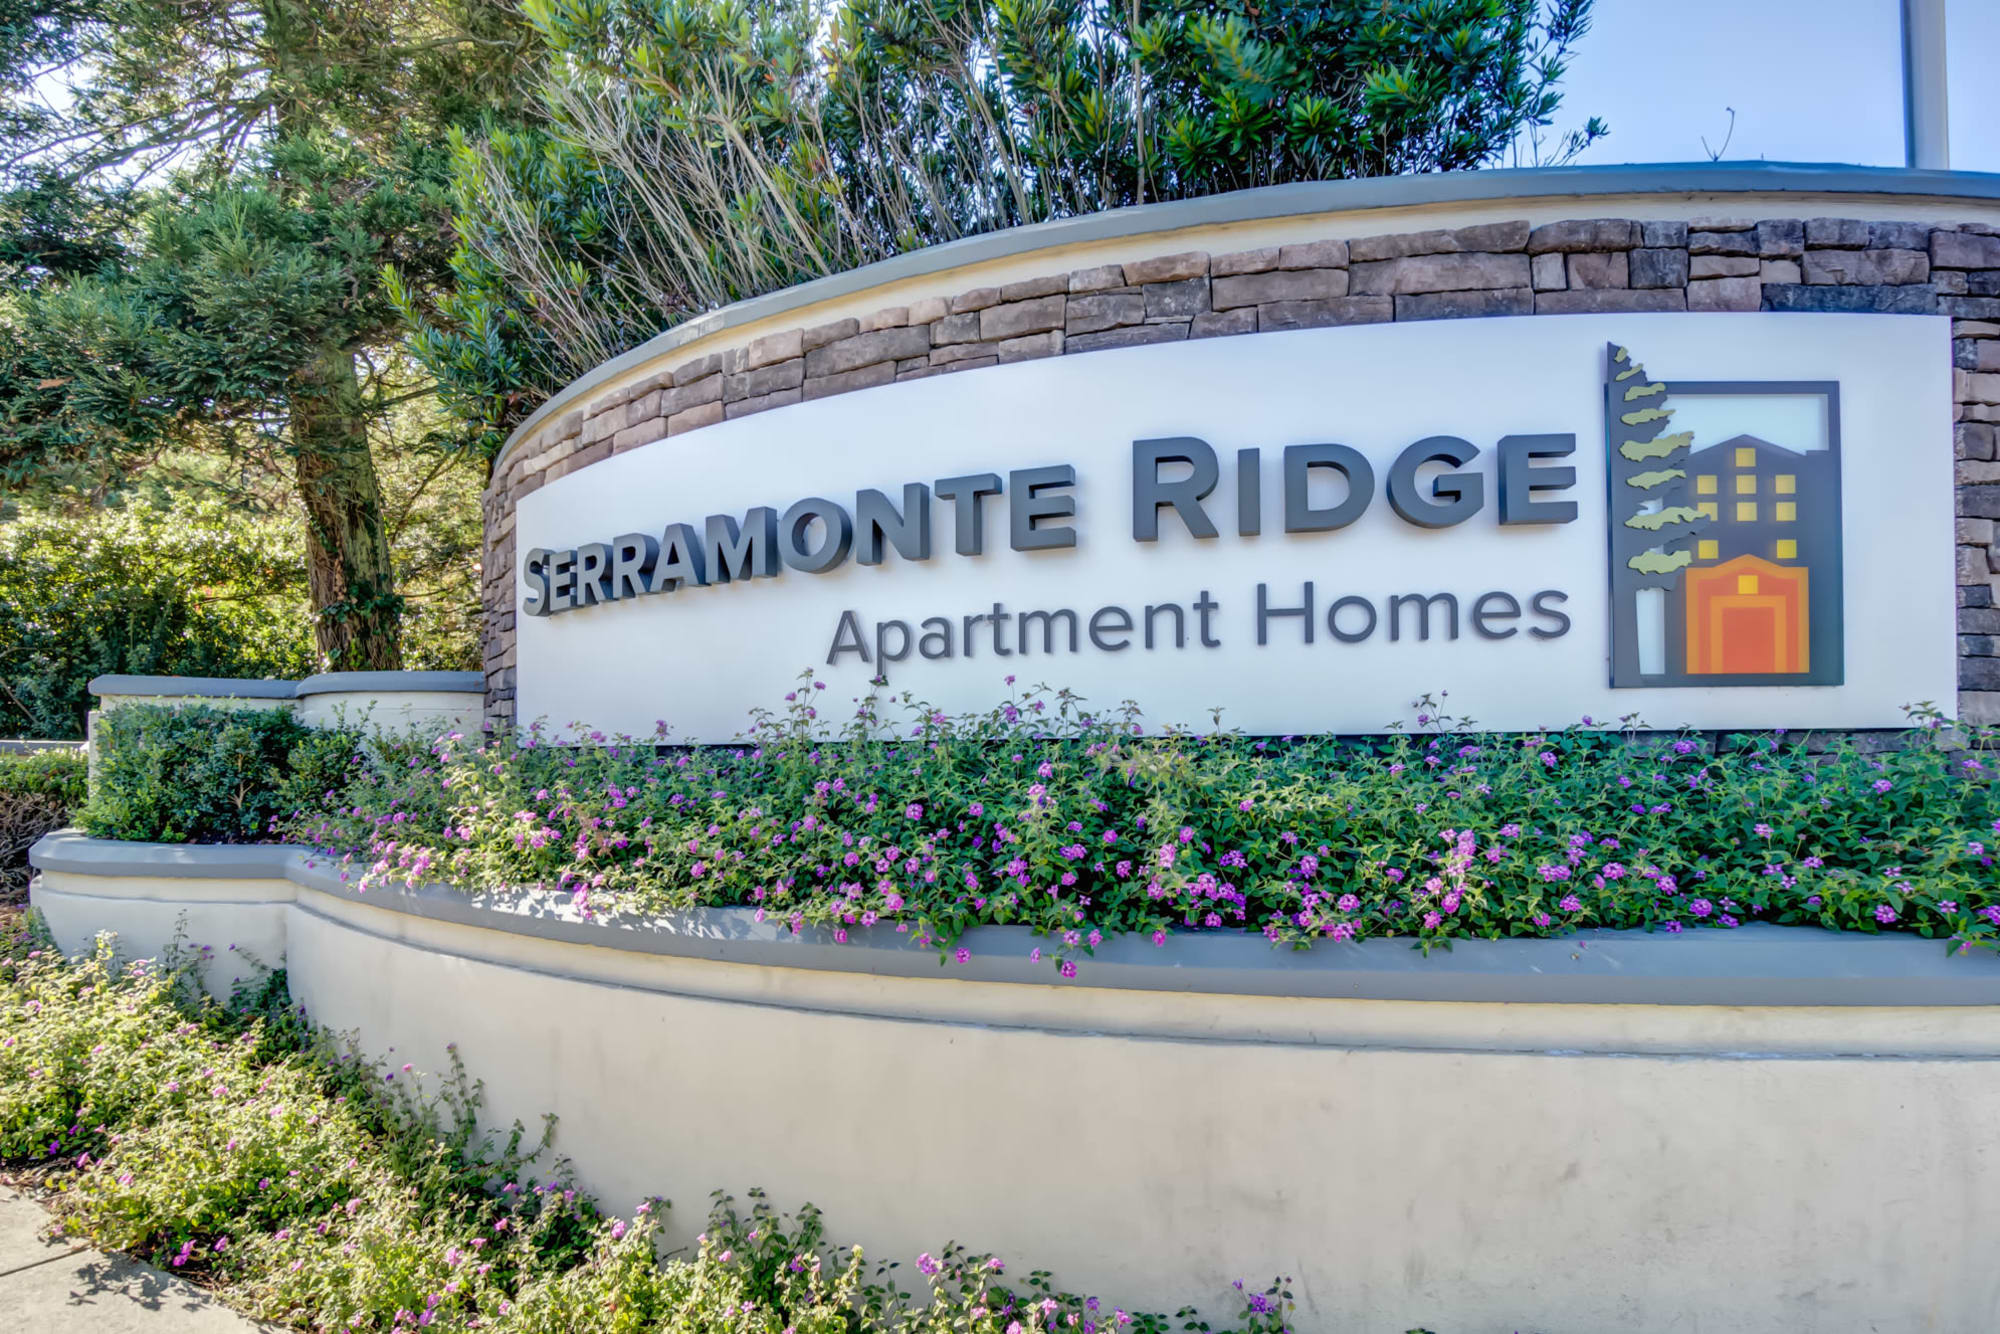 Monument Sign at Serramonte Ridge Apartment Homes